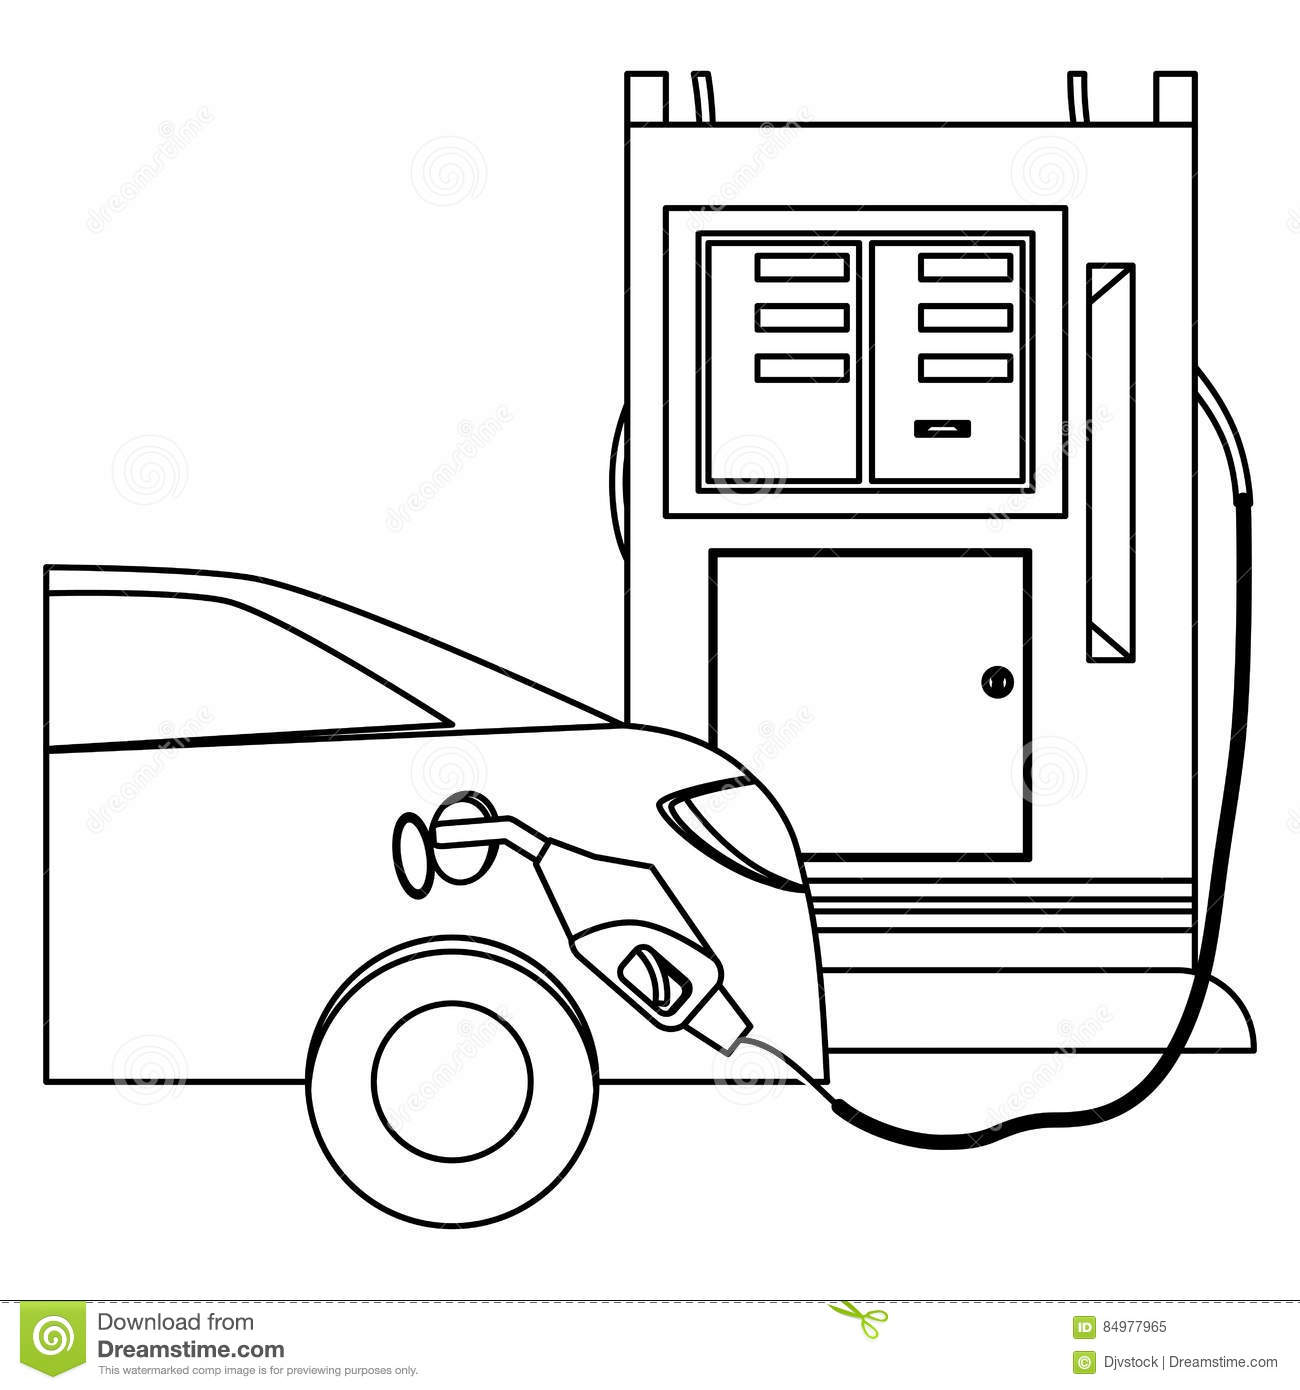 silhouette gas station filling up fuel a car stock lifeguard cross clipart lifeguard clipart free